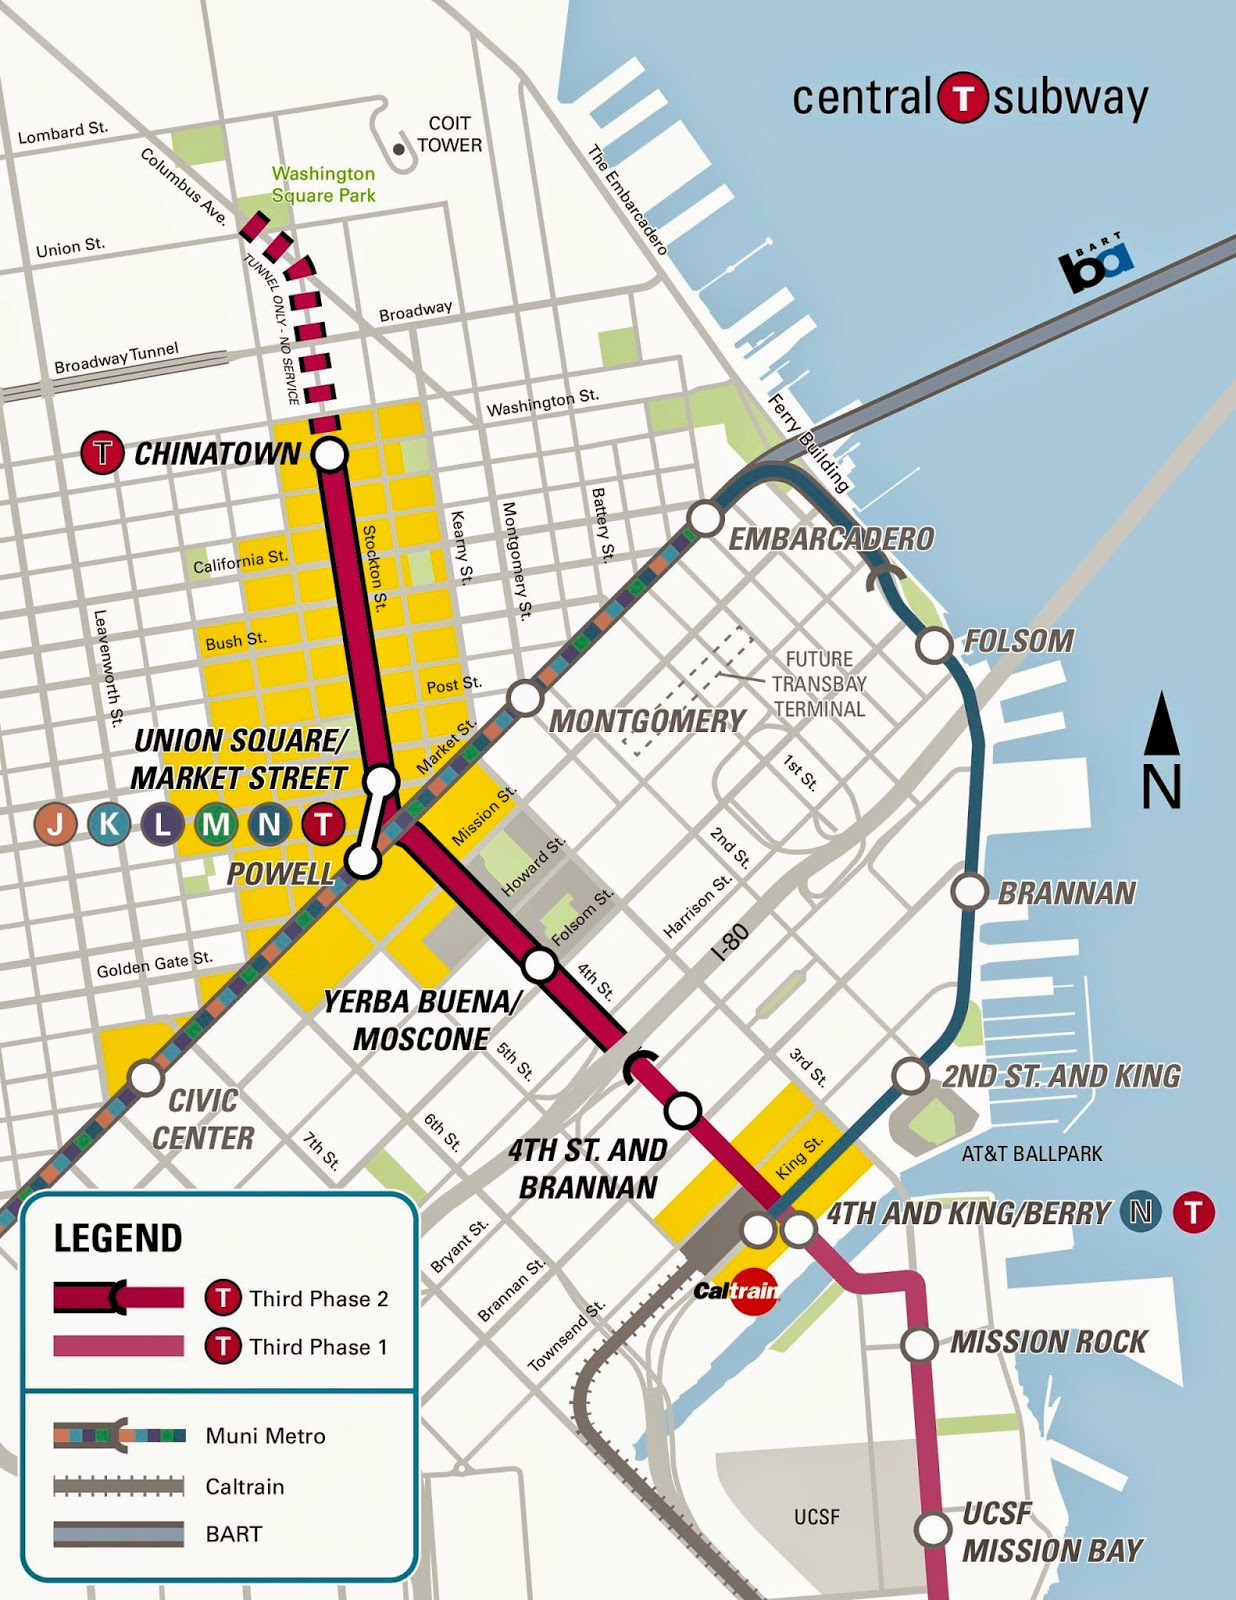 Central Subway Map.Give Me A Moment A Lifestyle Downtown San Francisco Central Subway